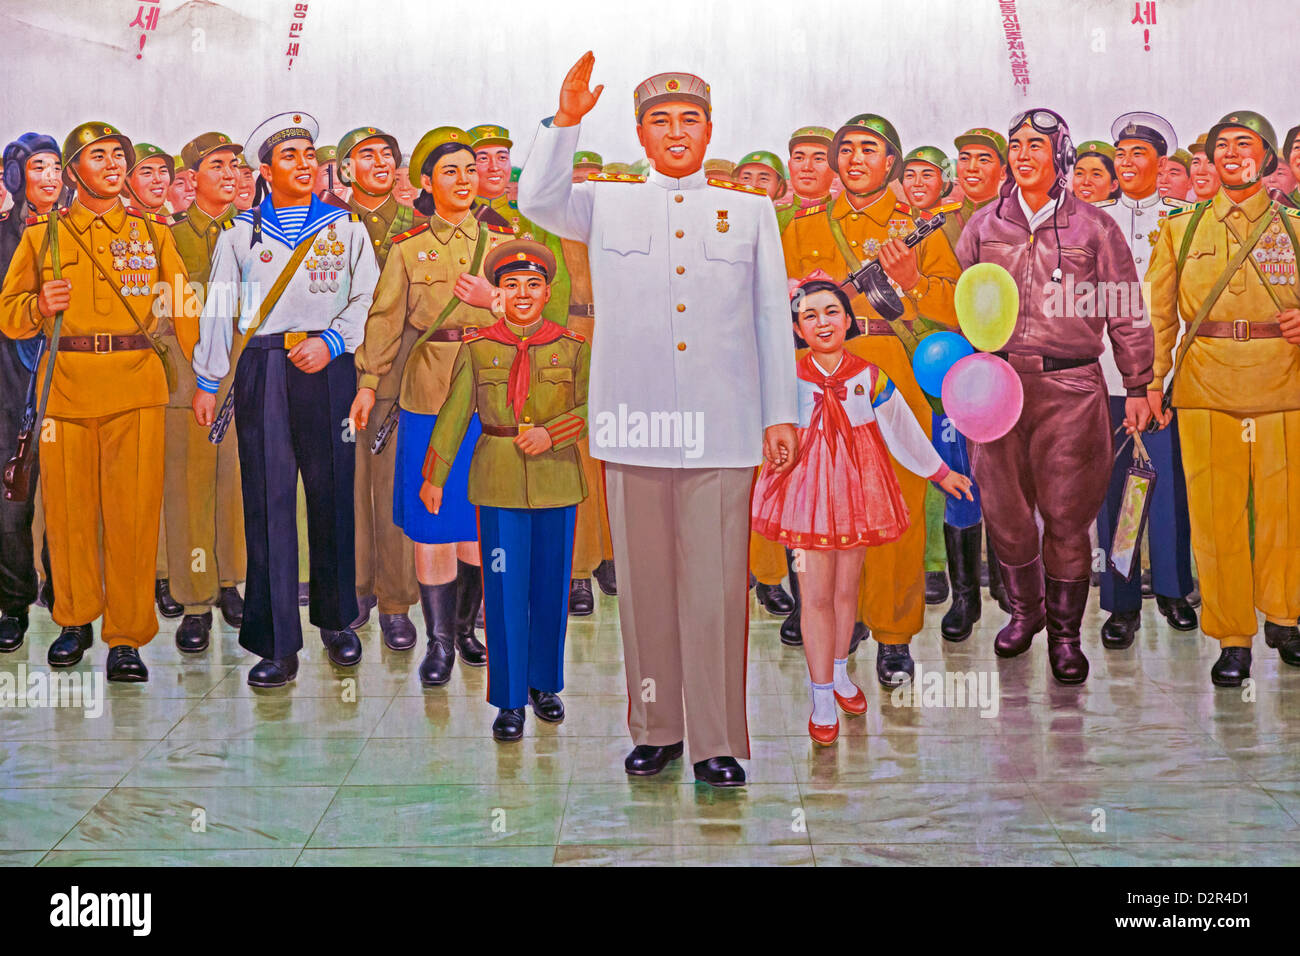 Wall mural of Kim Il Sung, Victorious Fatherland Liberation War Museum, Pyongyang, North Korea - Stock Image